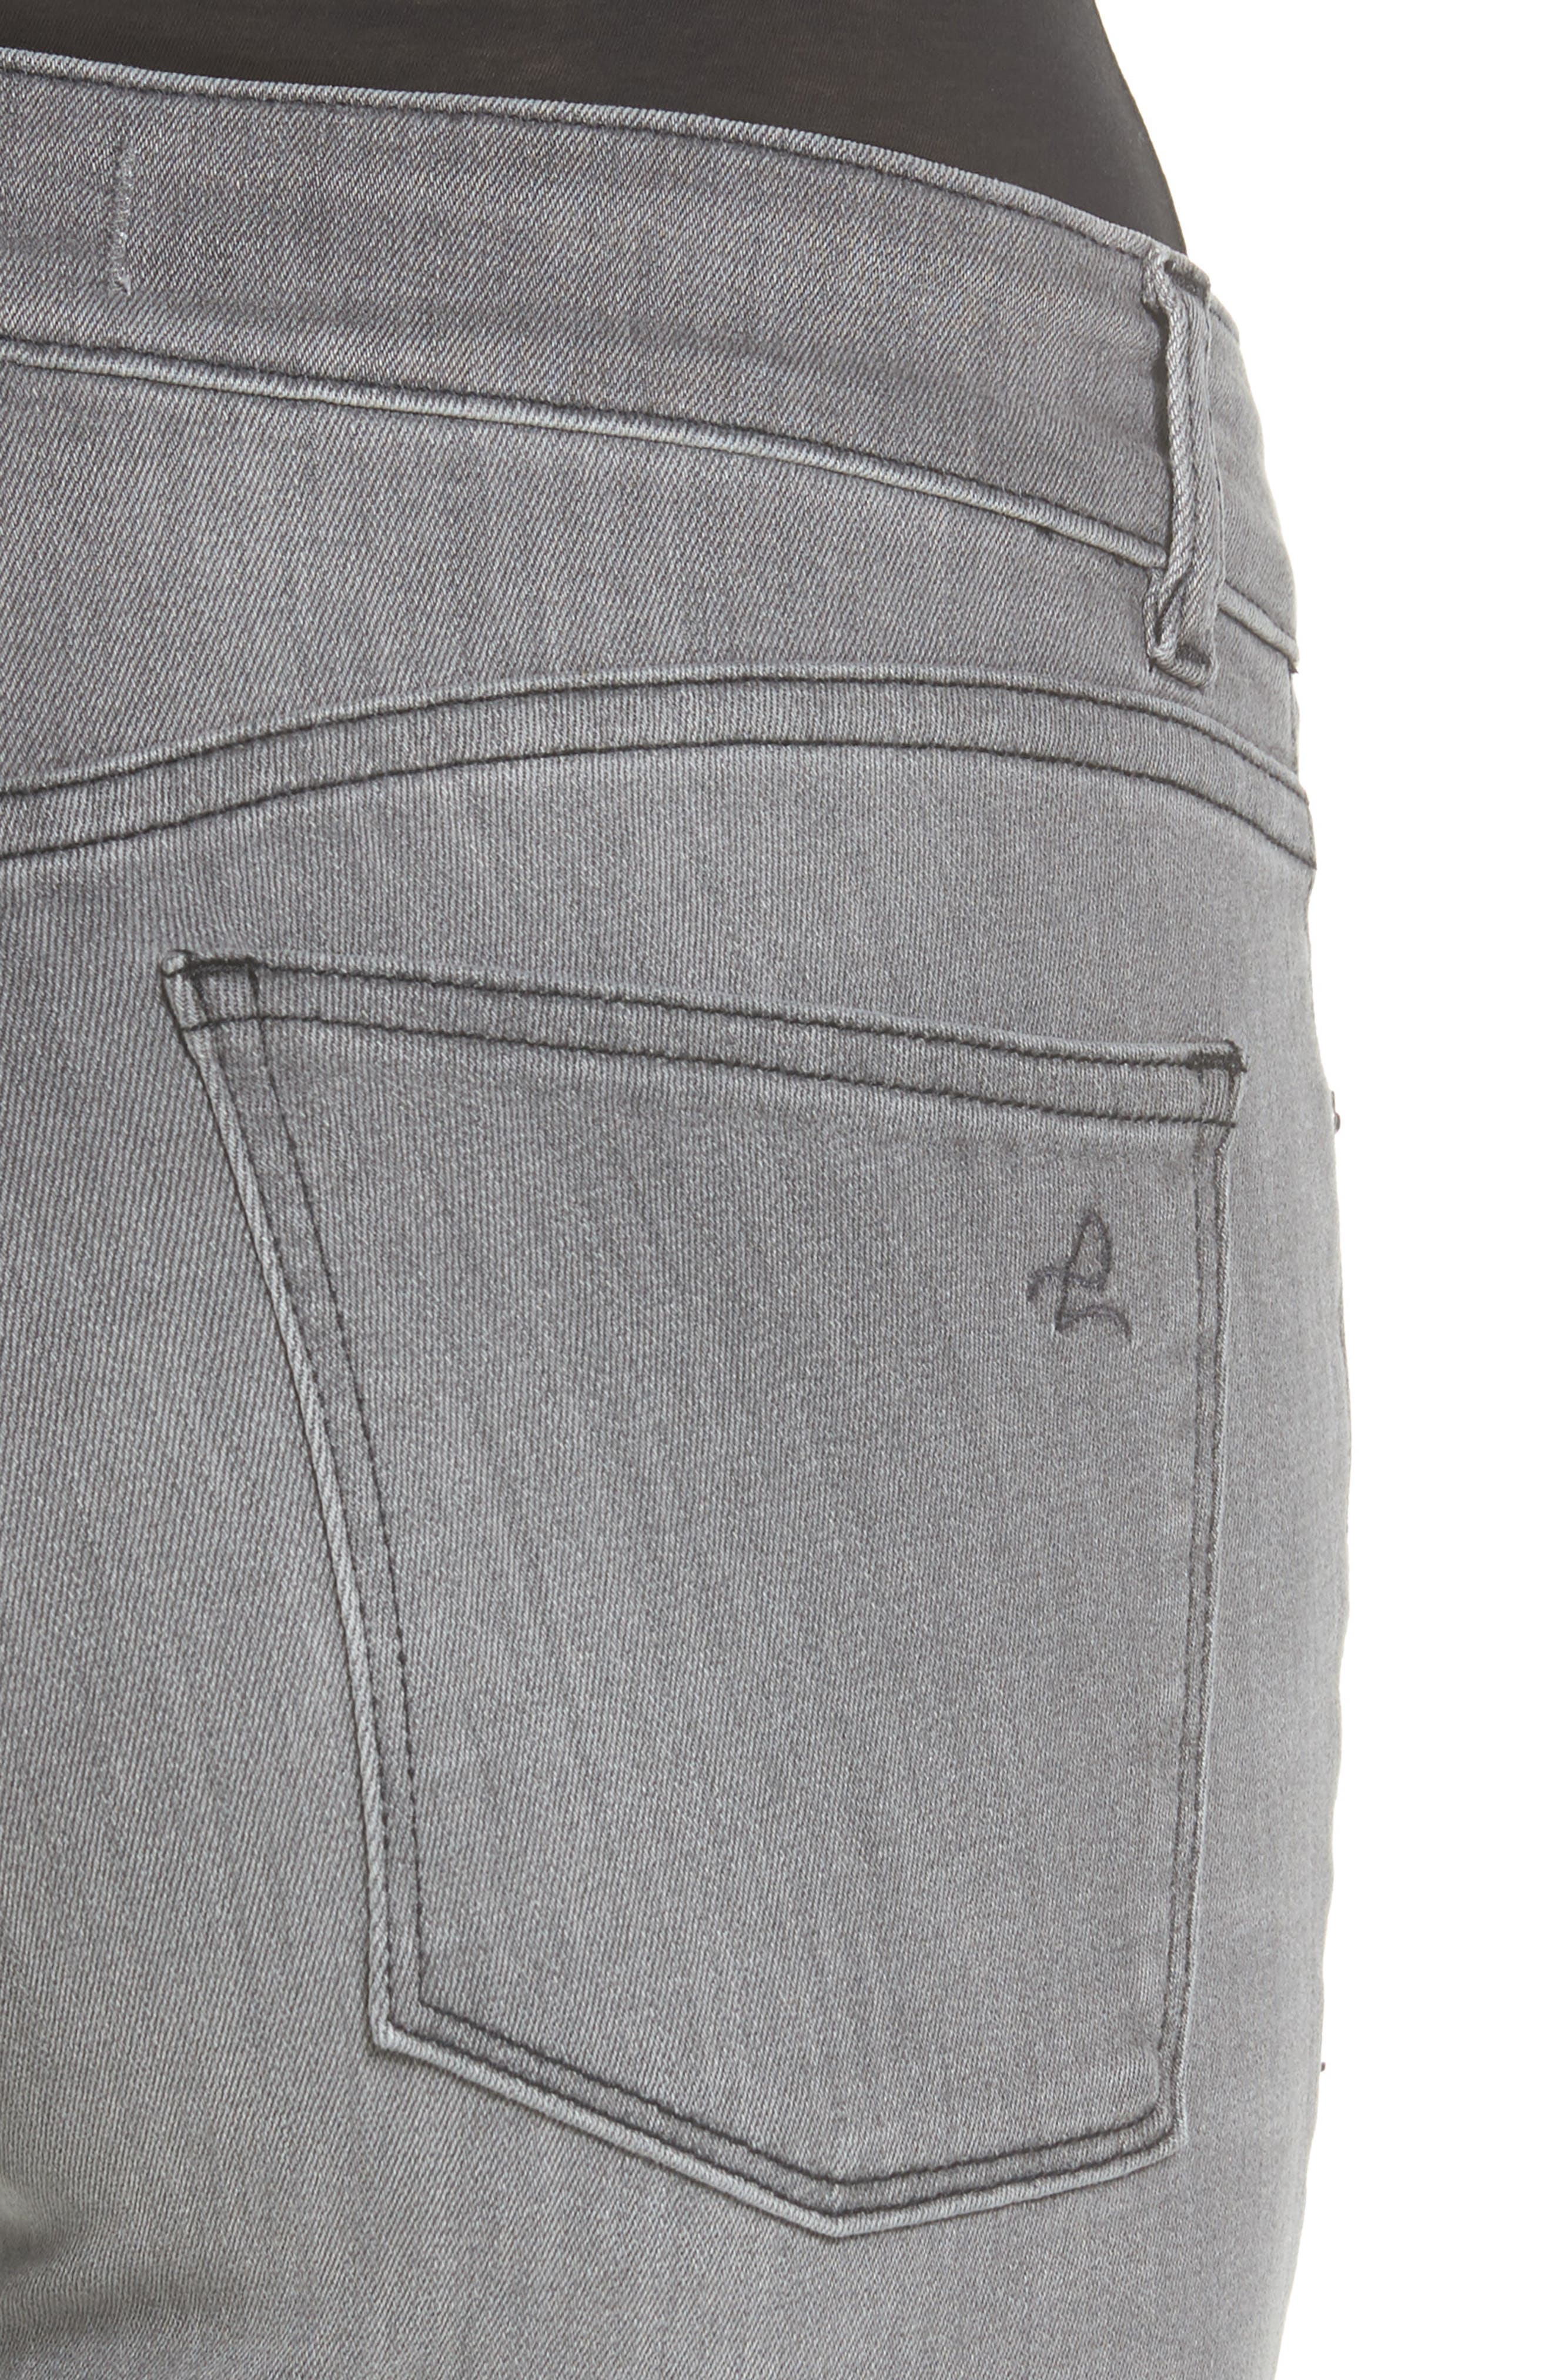 Alternate Image 4  - DL1961 Florence Skinny Jeans (Chadwick)